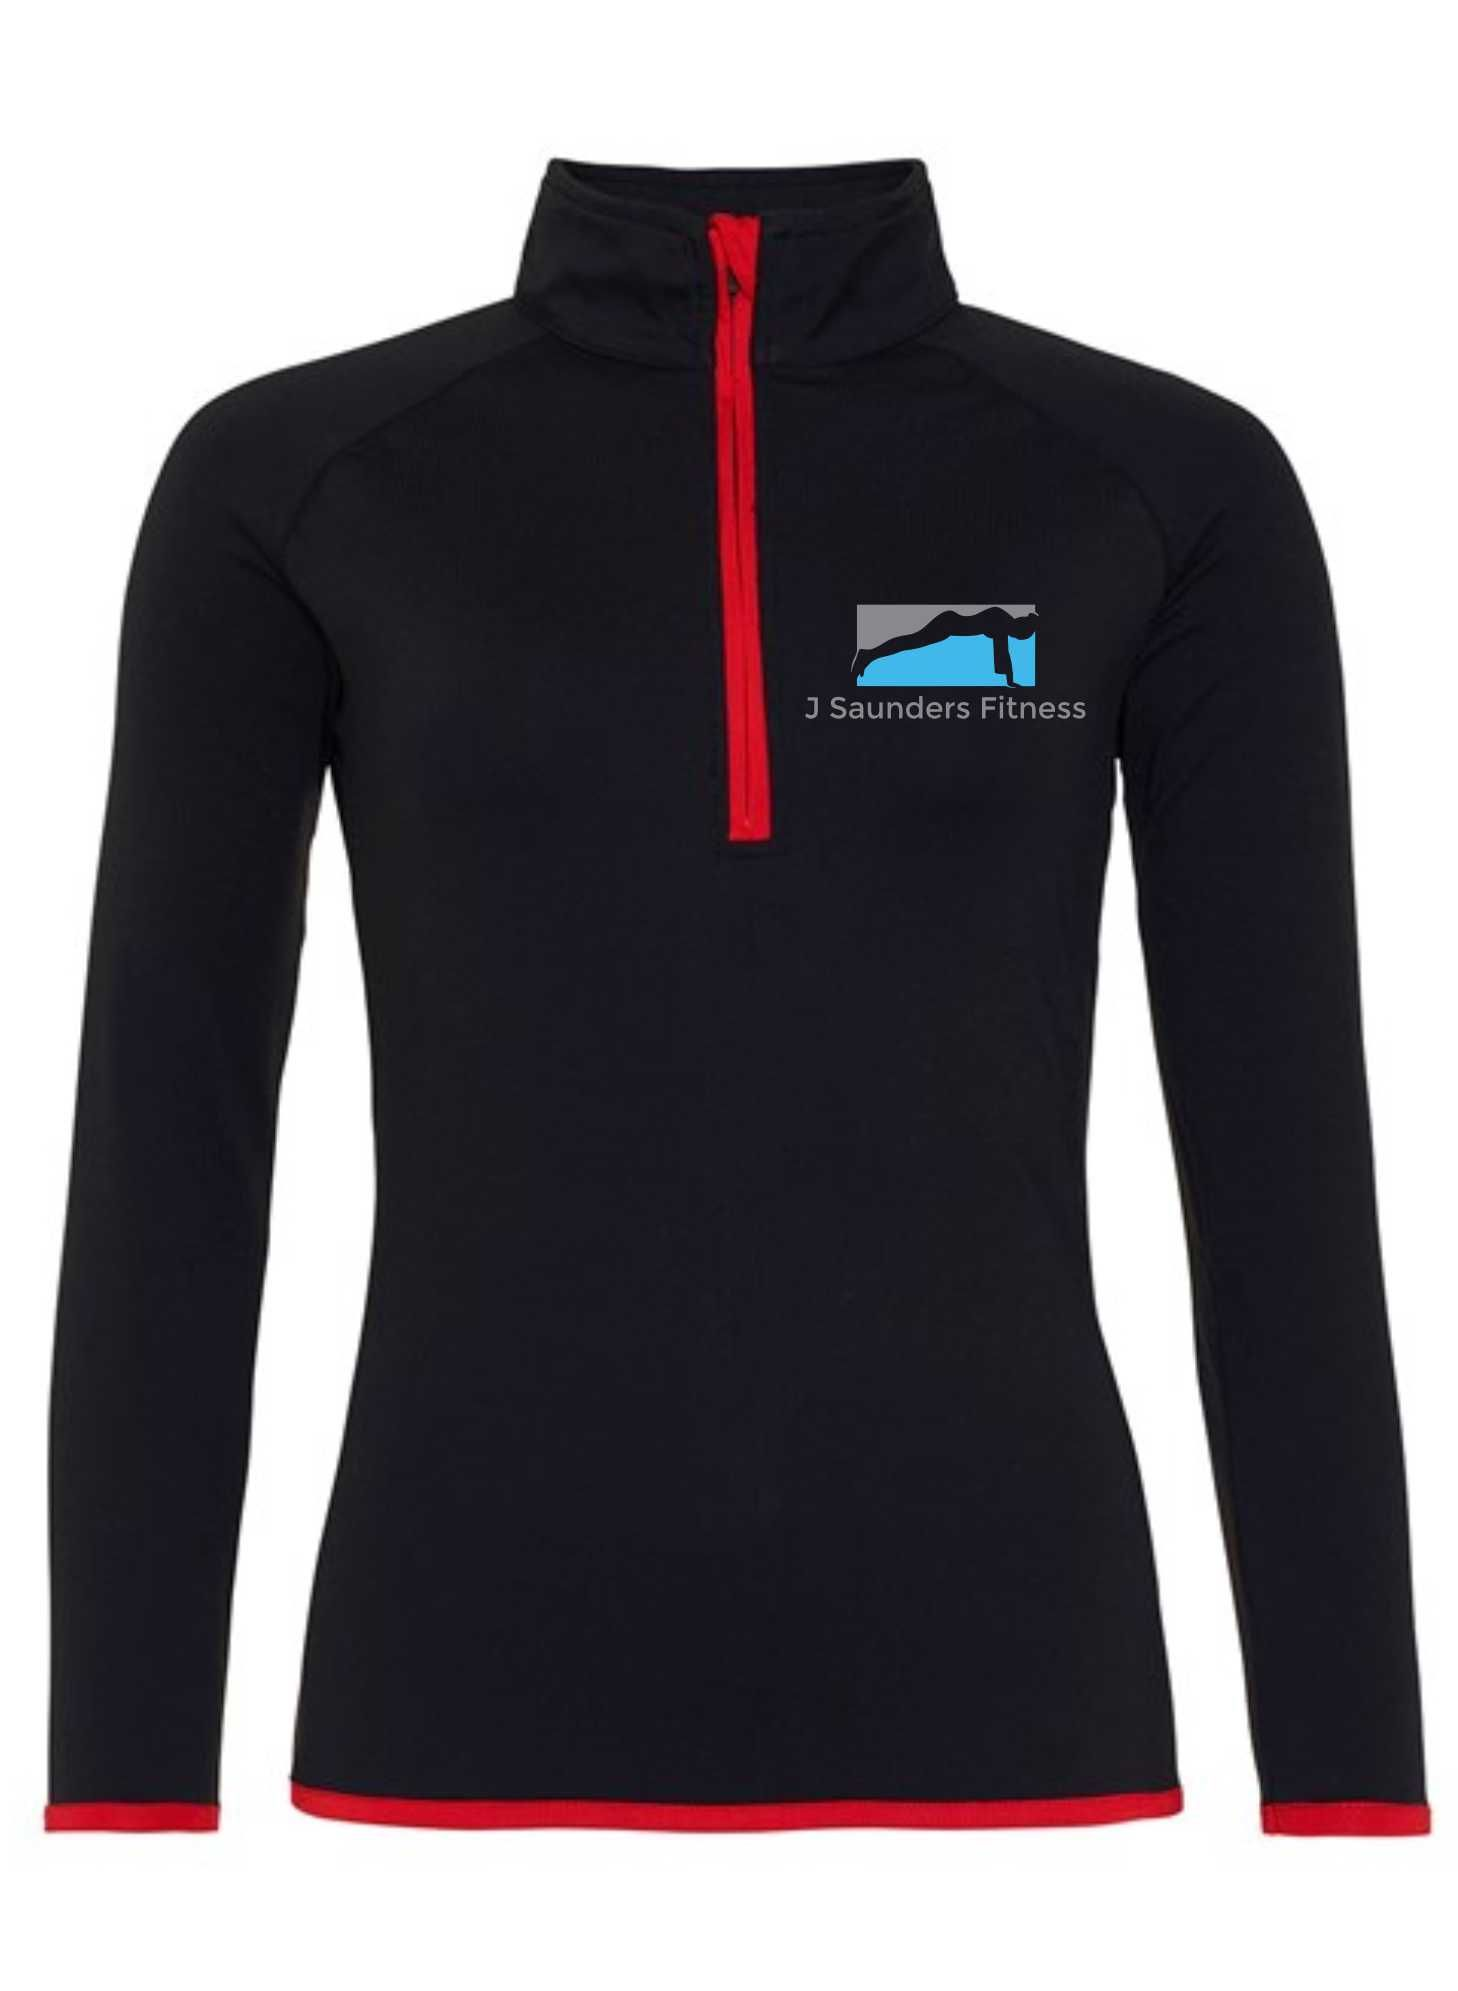 J Saunders Fitness- Sports 1/2 Zip Sweater (Ladies)